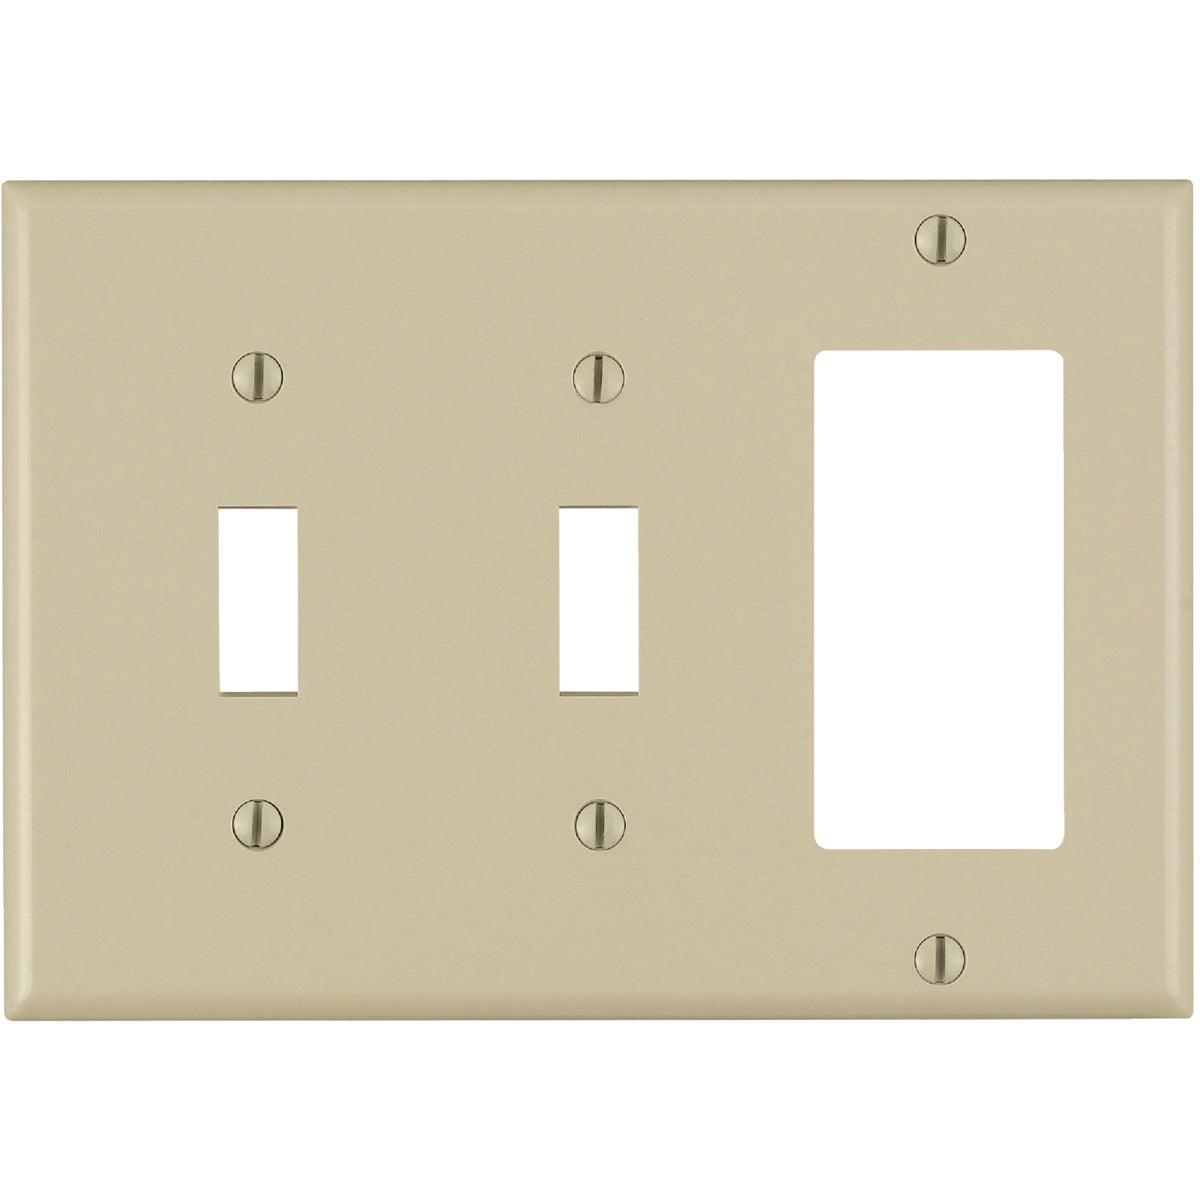 IV 2T ROCKER WALLPLATE - 001-80421I by Leviton Mfg Co